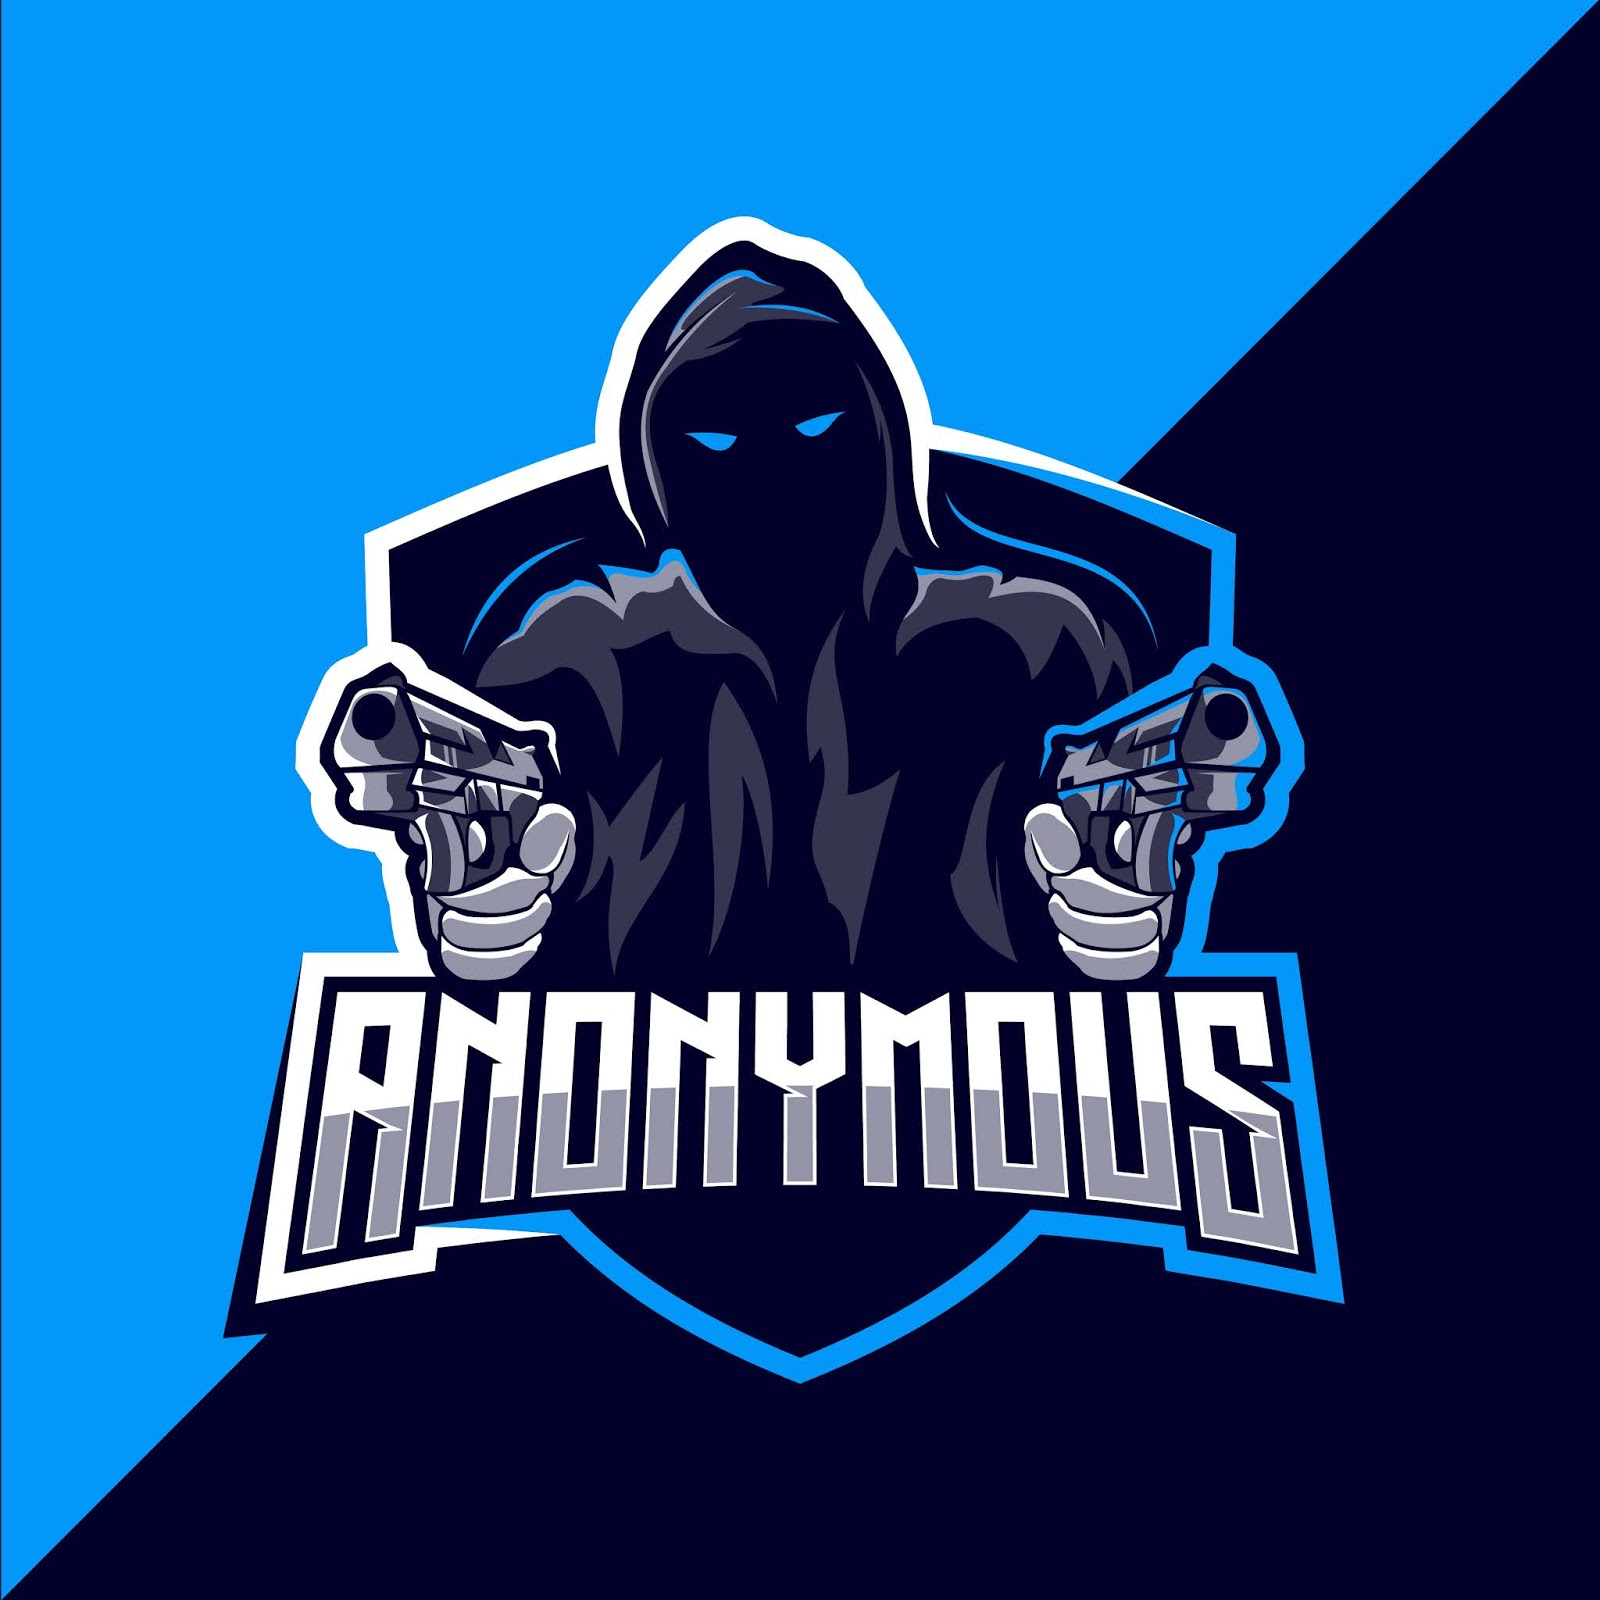 Anonymous Mascot Esport Logo Design Free Download Vector CDR, AI, EPS and PNG Formats